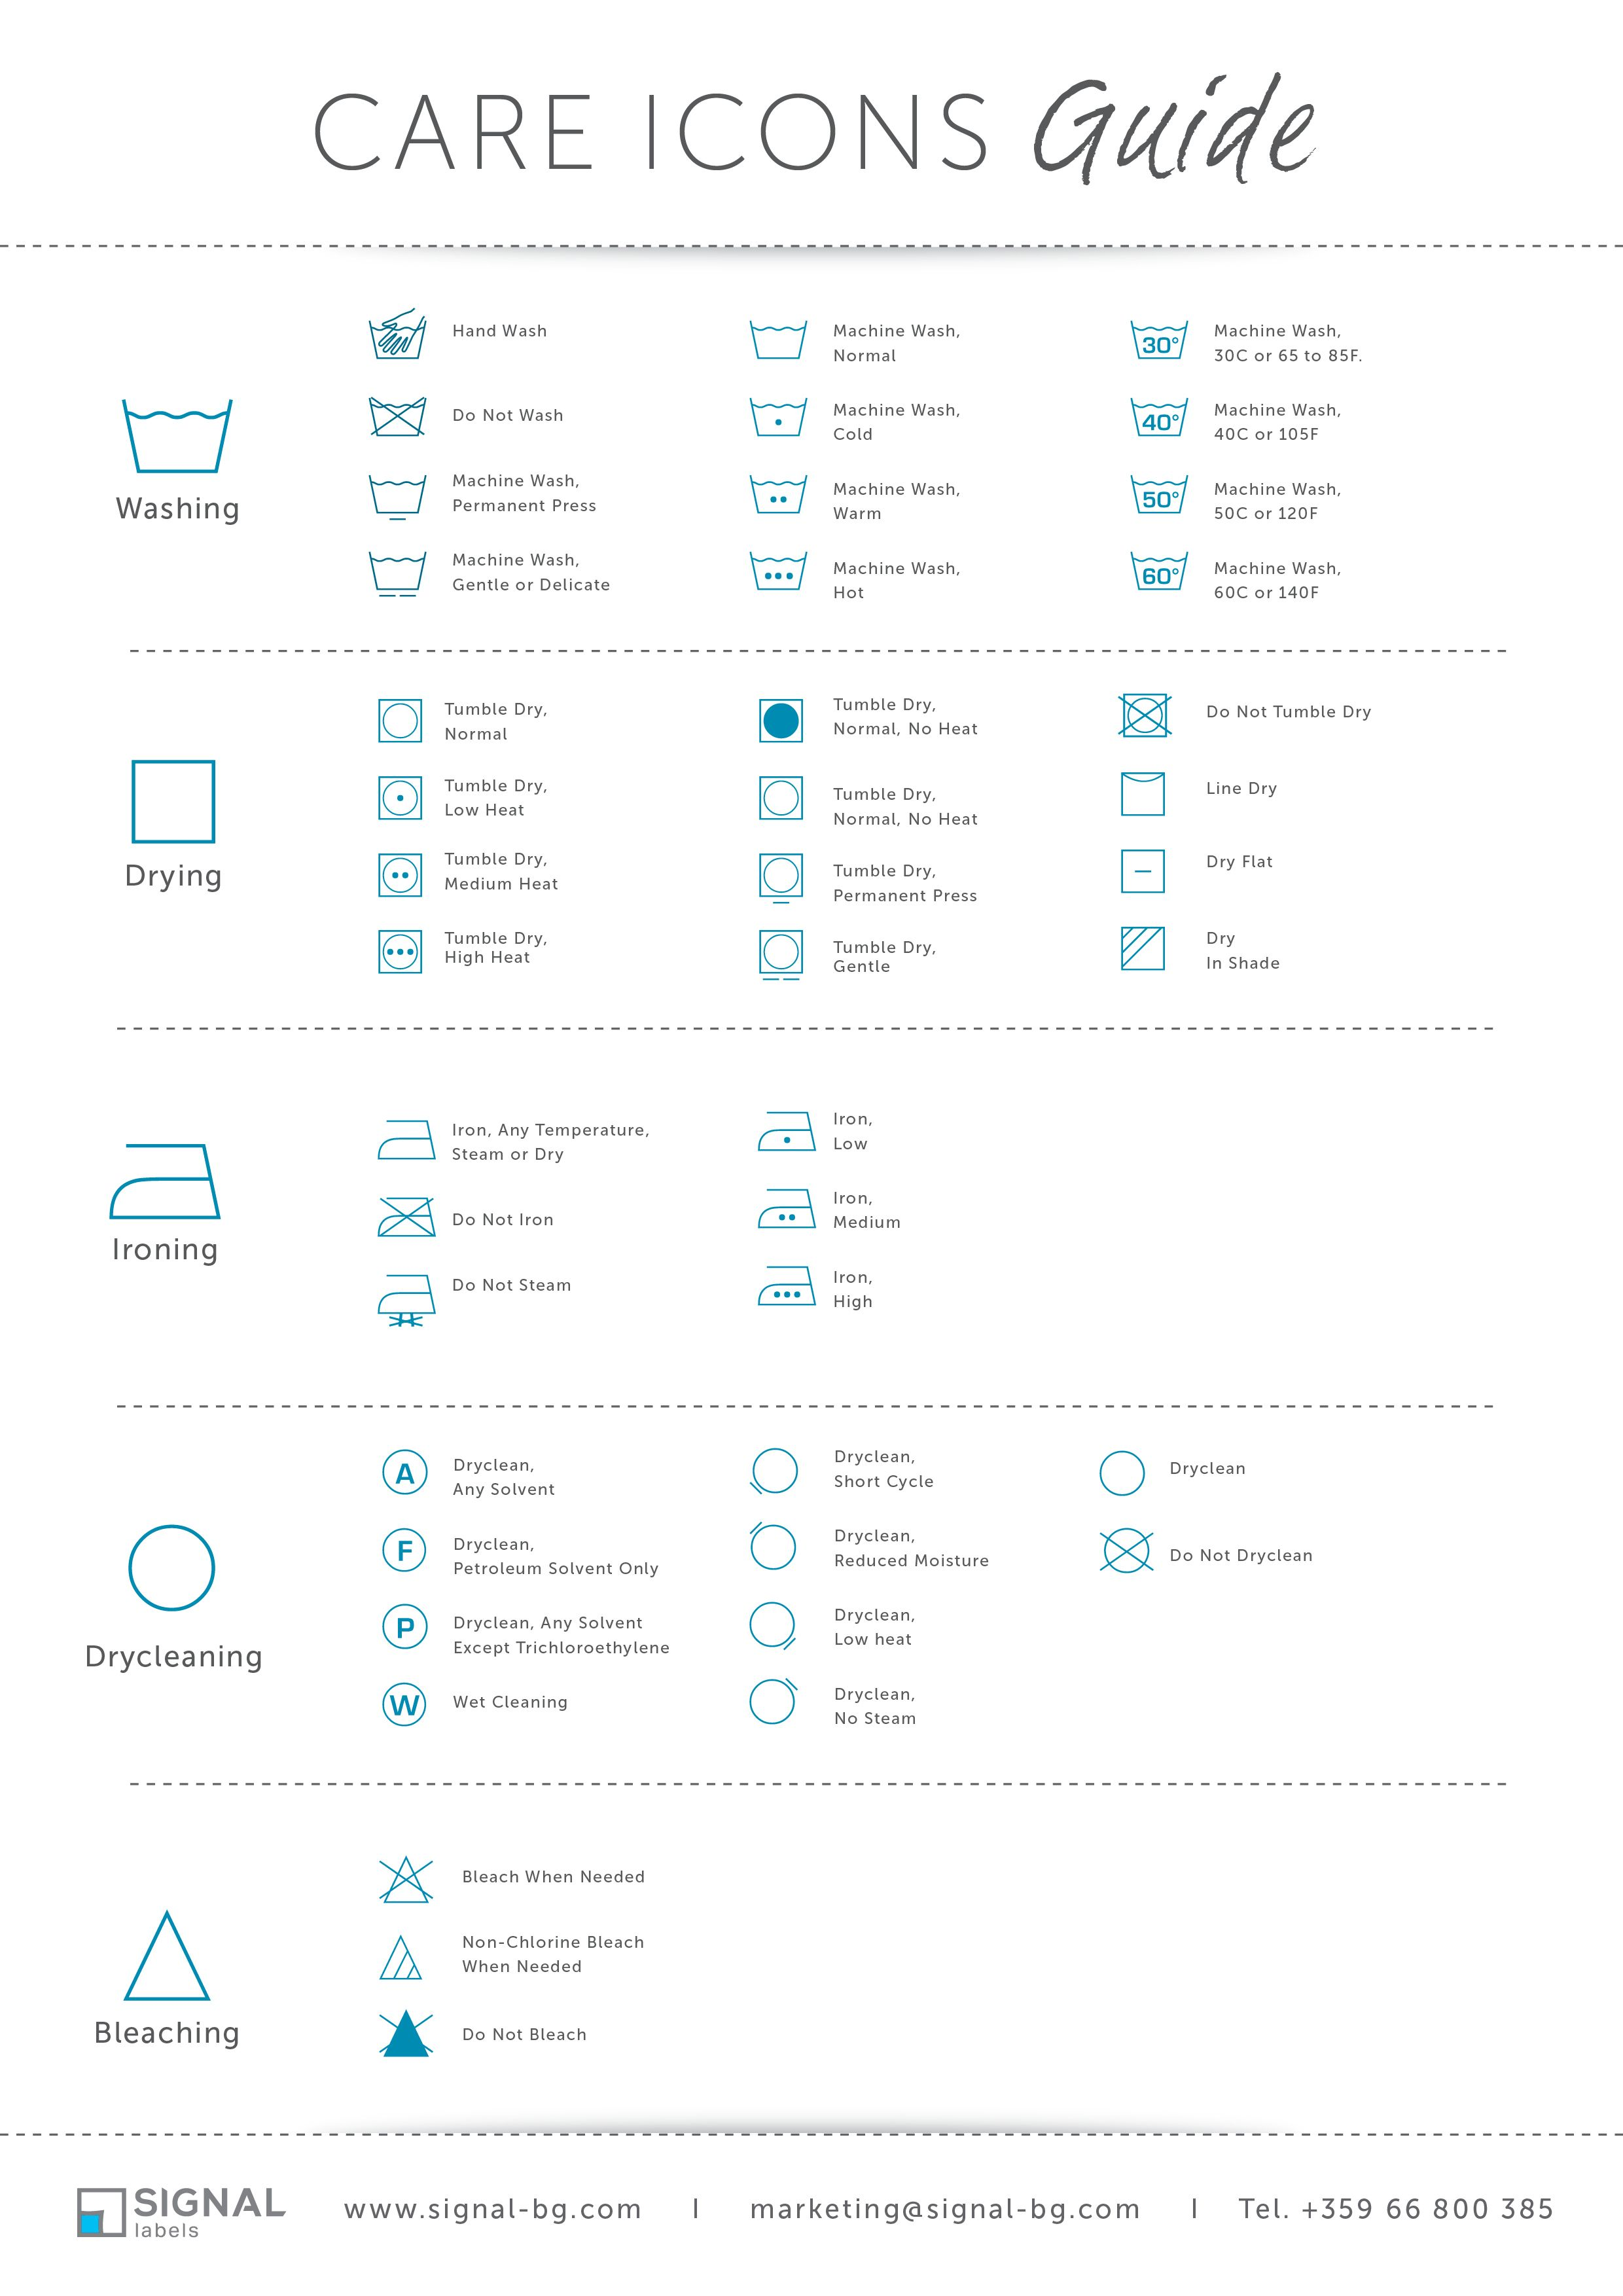 Care Icons Guide, Washing Instructions, Laundry Care Icons